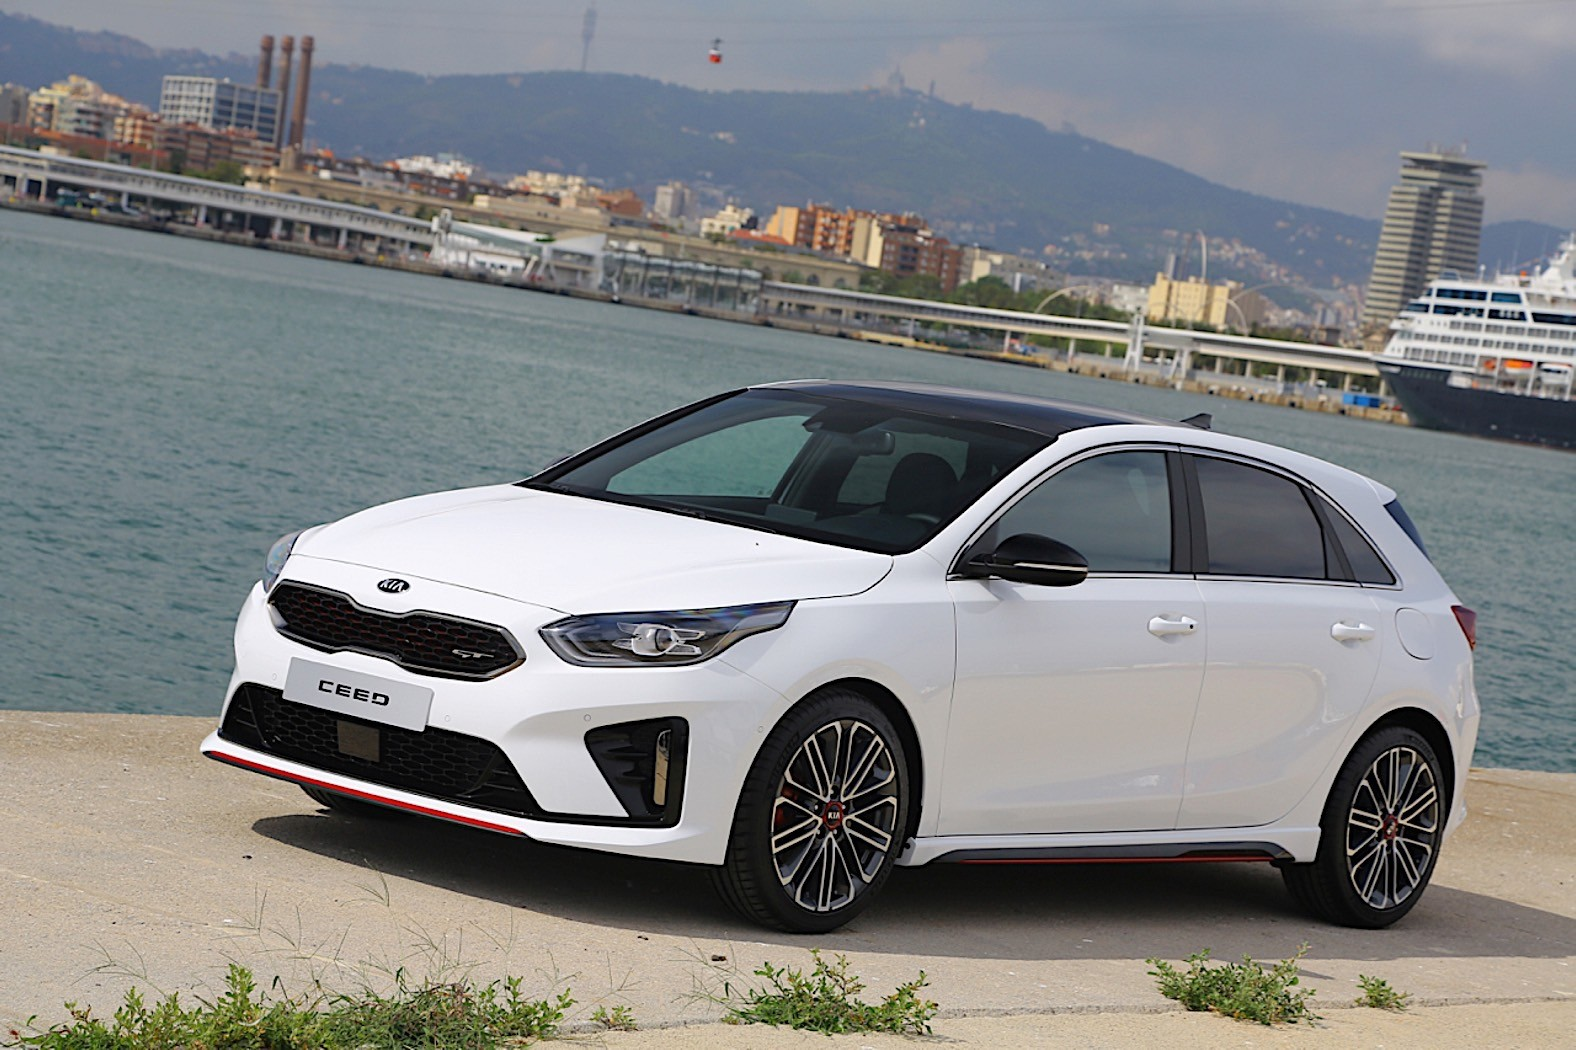 uk spec kia ceed gt priced from 25 535 pounds autoevolution. Black Bedroom Furniture Sets. Home Design Ideas